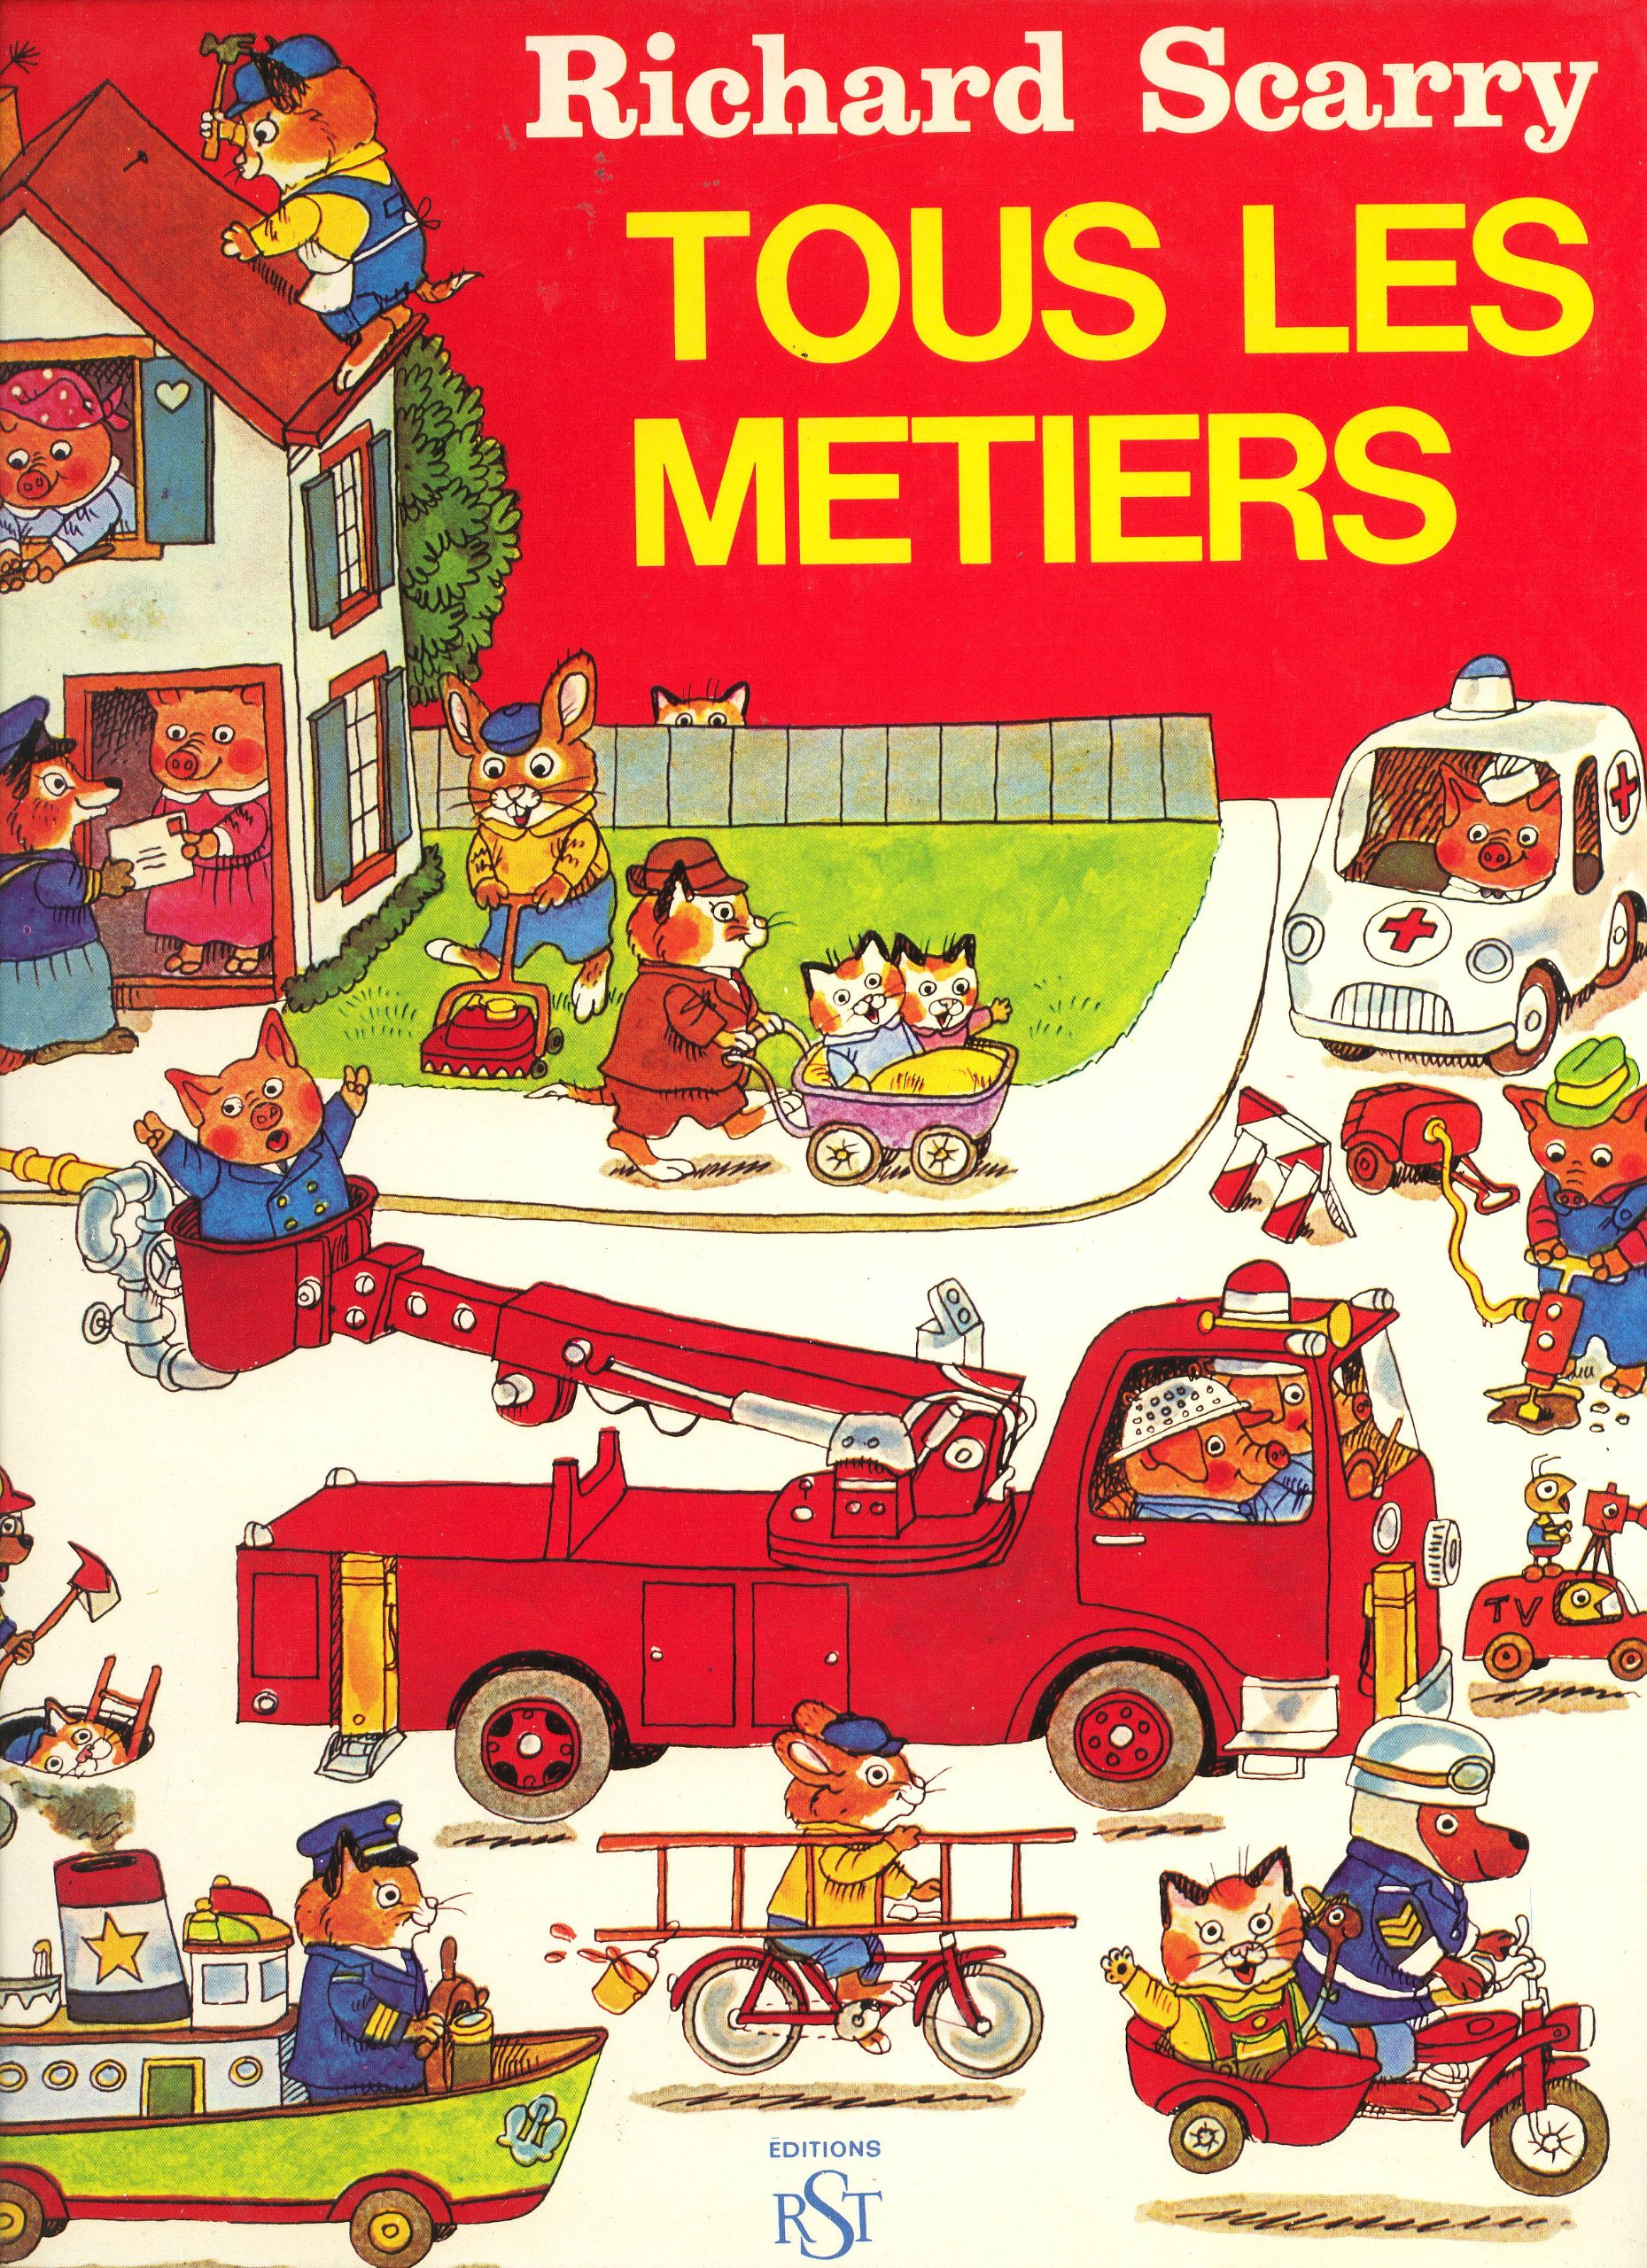 Tous Les Metiers (Busiest People Ever): Richard Scarry, Richard Scarry:  Amazon.com: Books